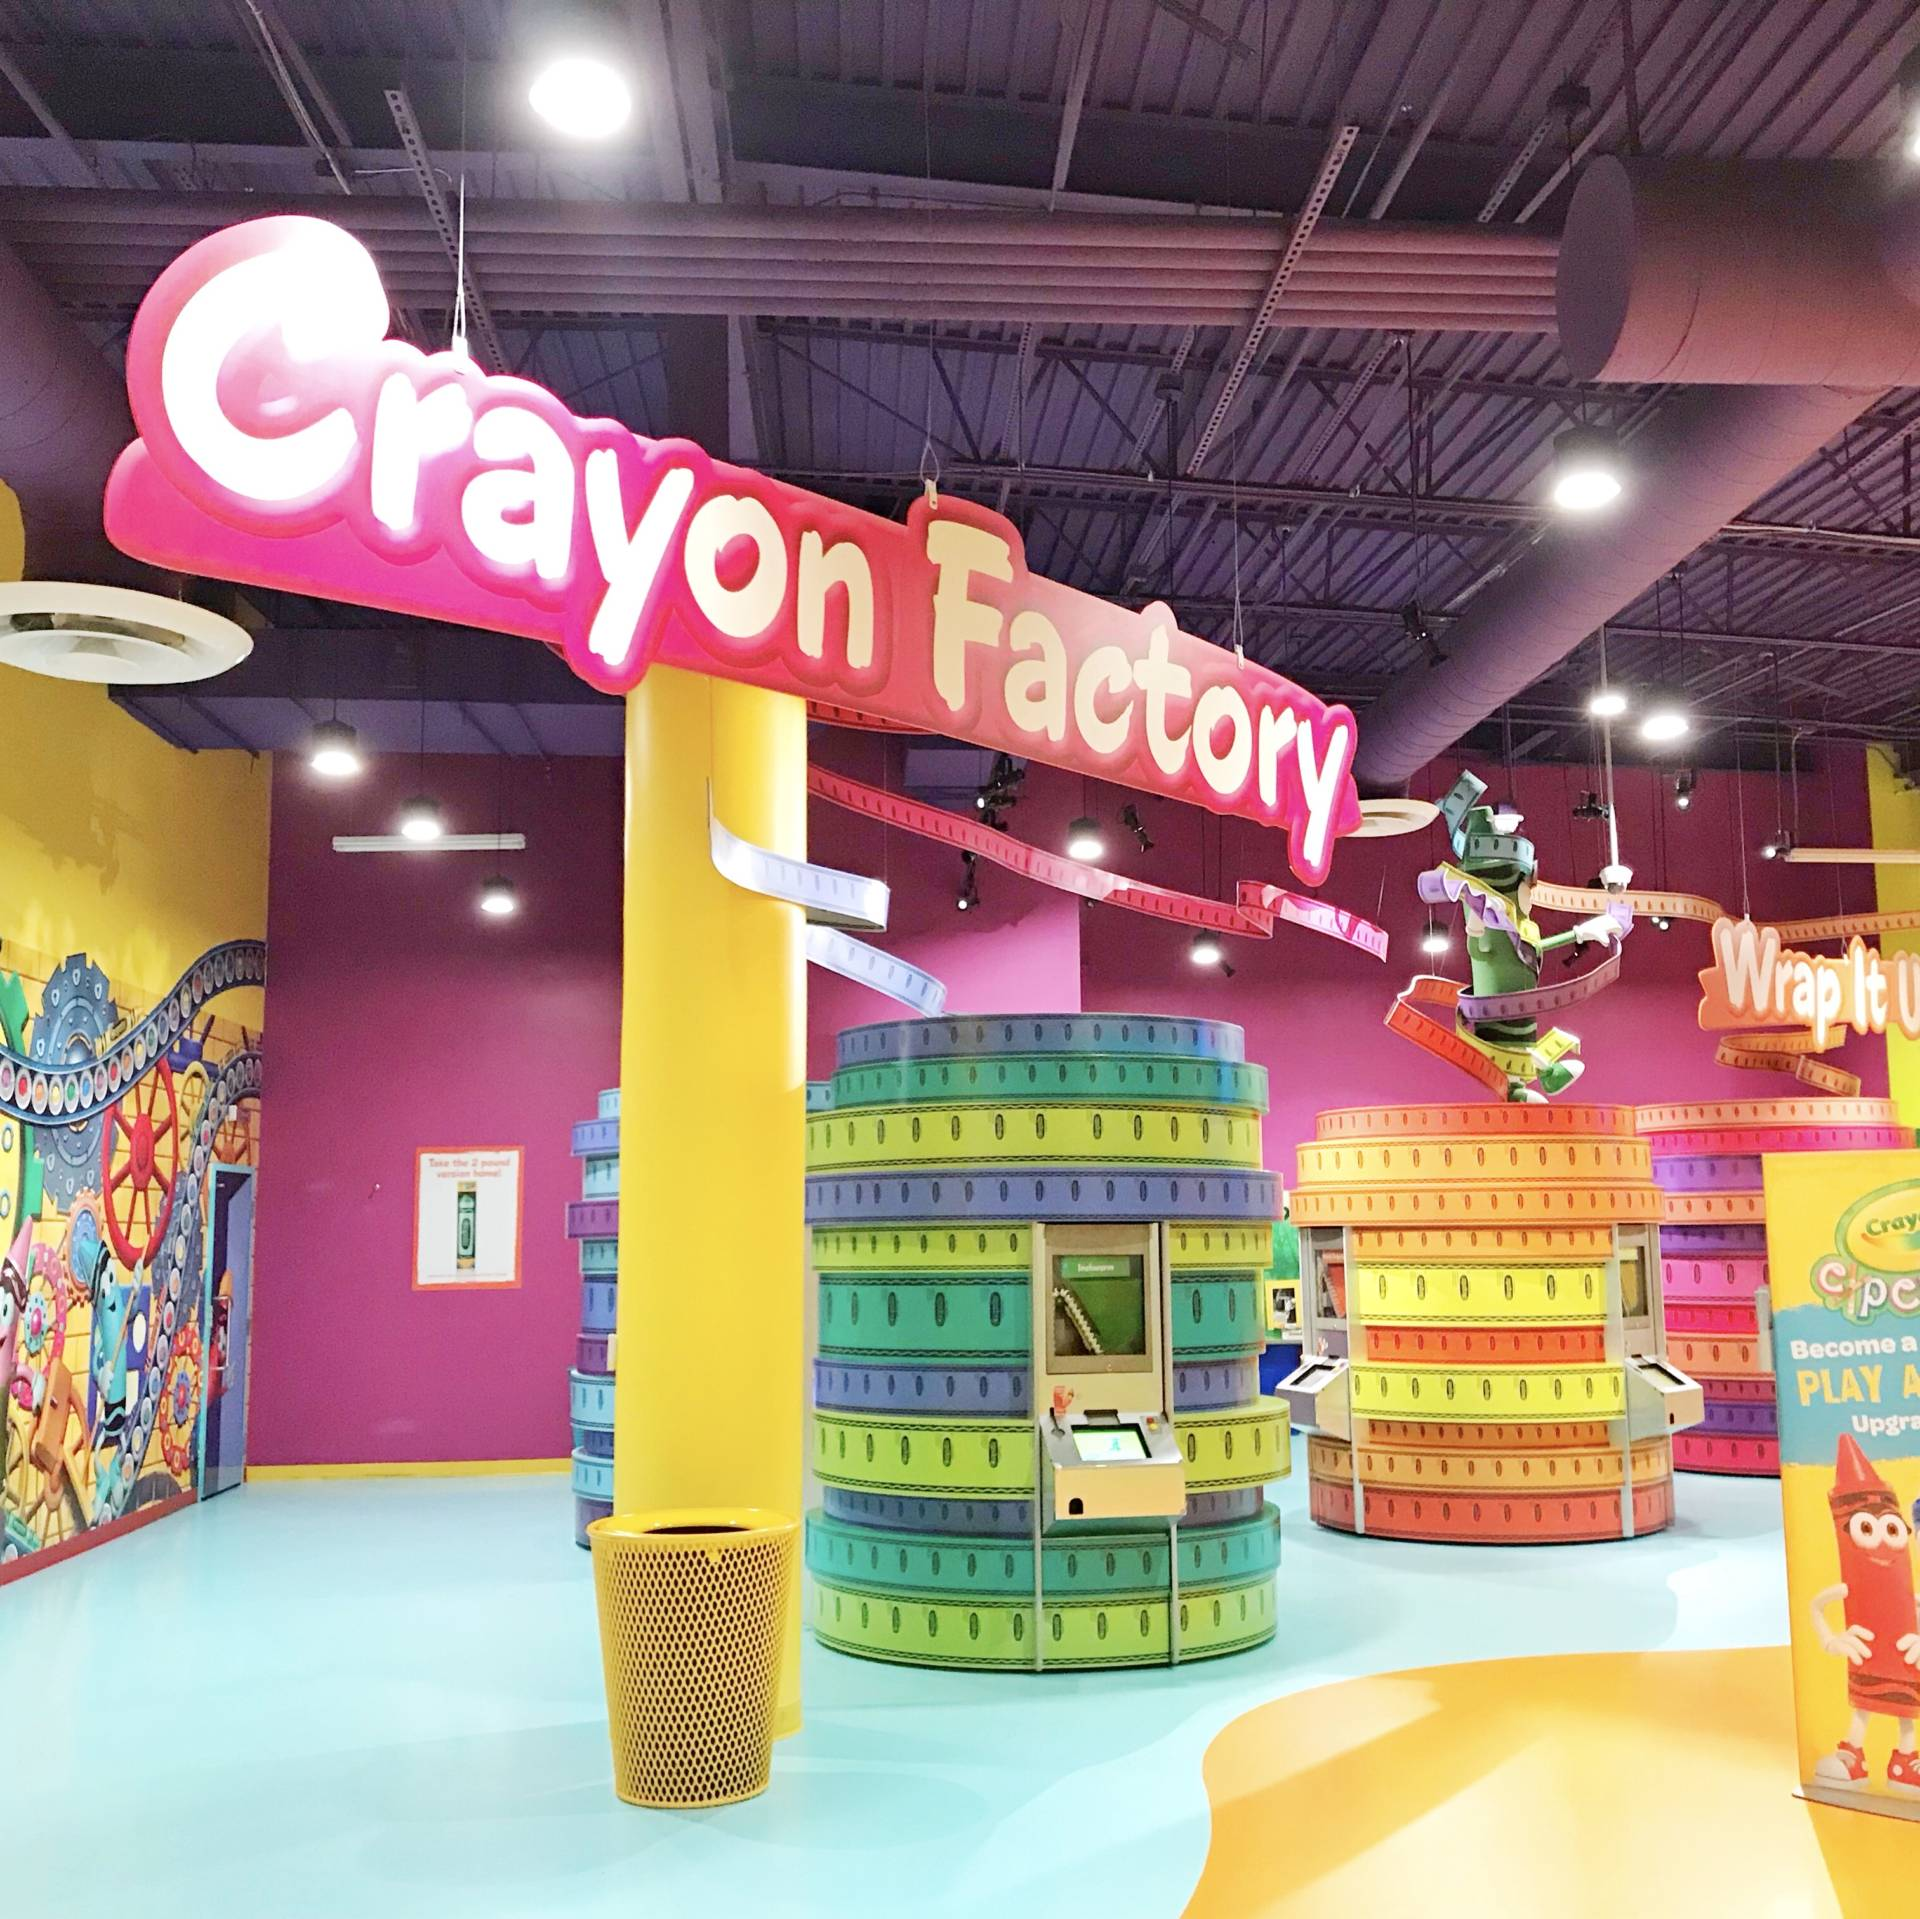 The Crayola_Experience